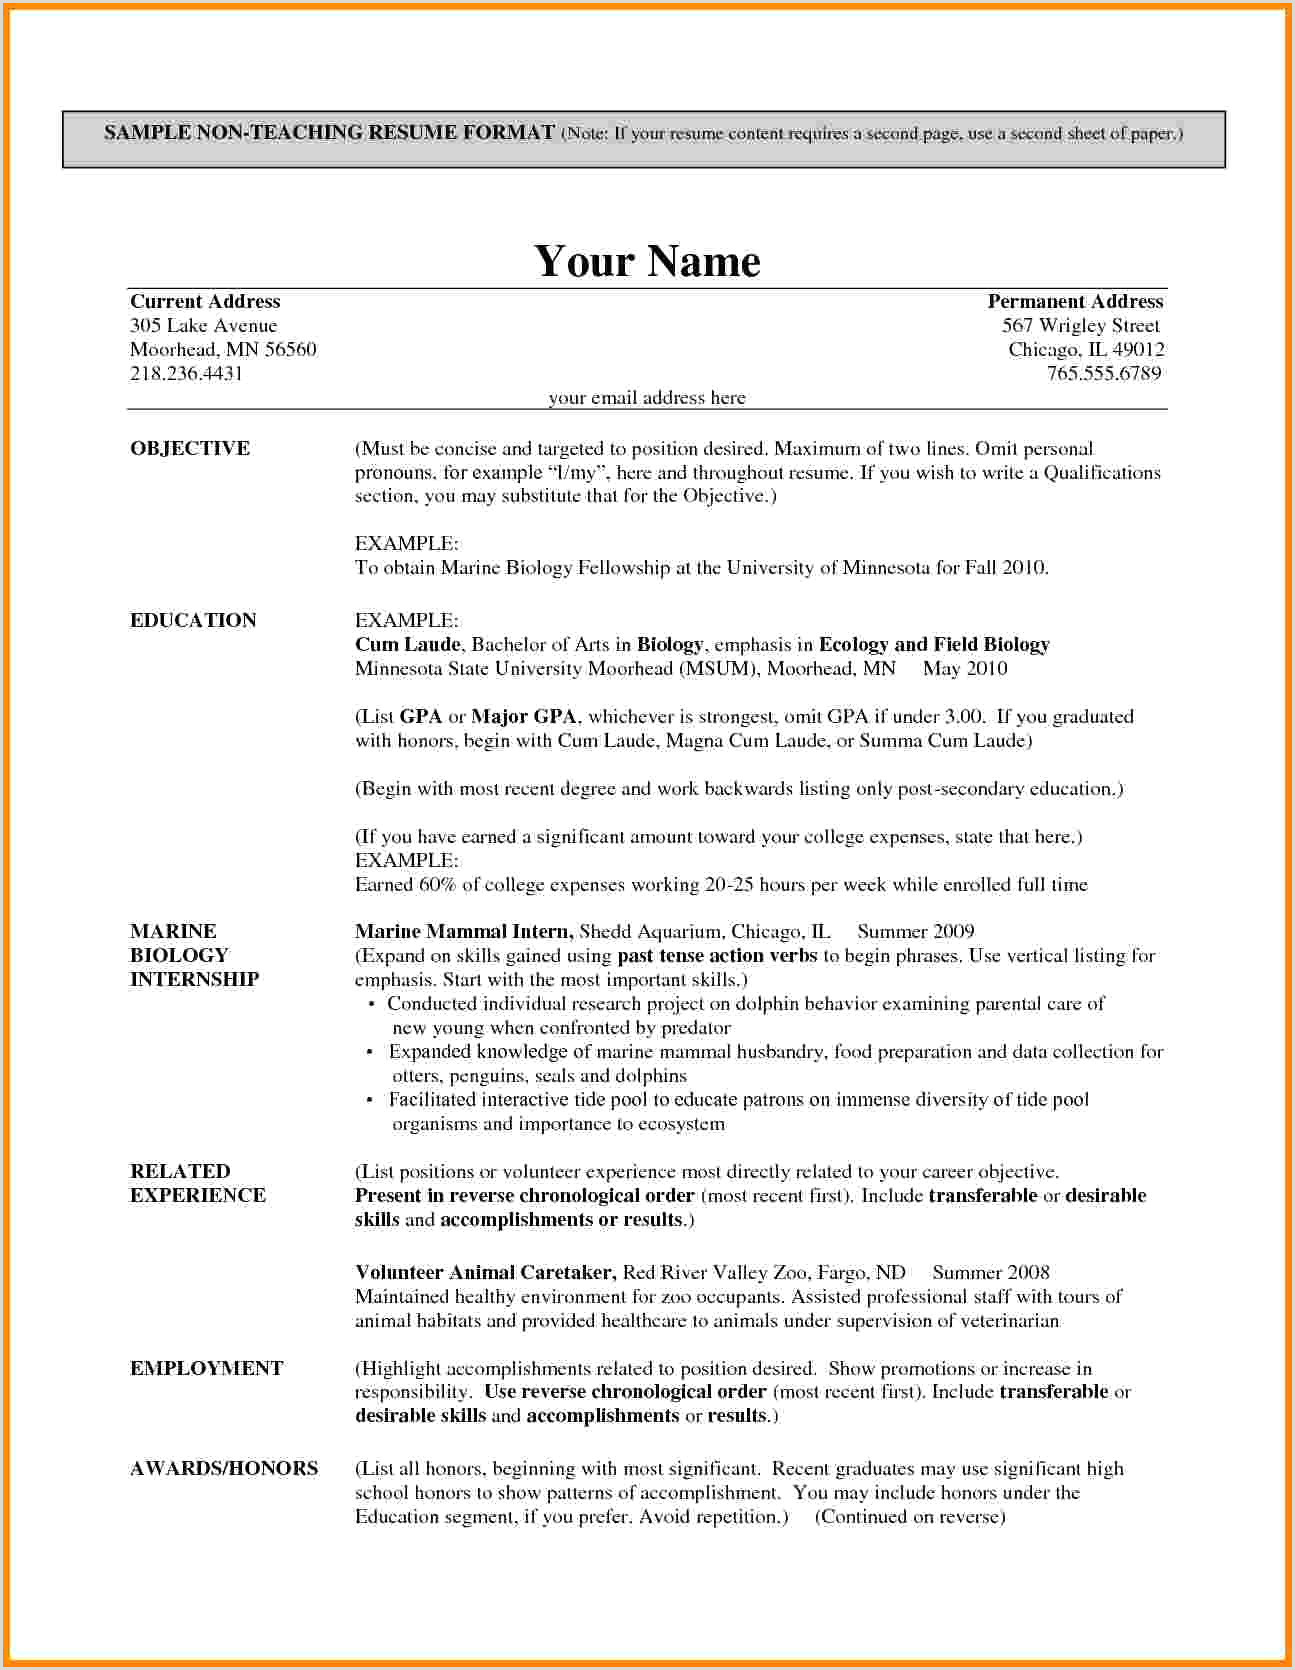 Resume format for Fresher Teacher Job Part 2 Resume format Examples